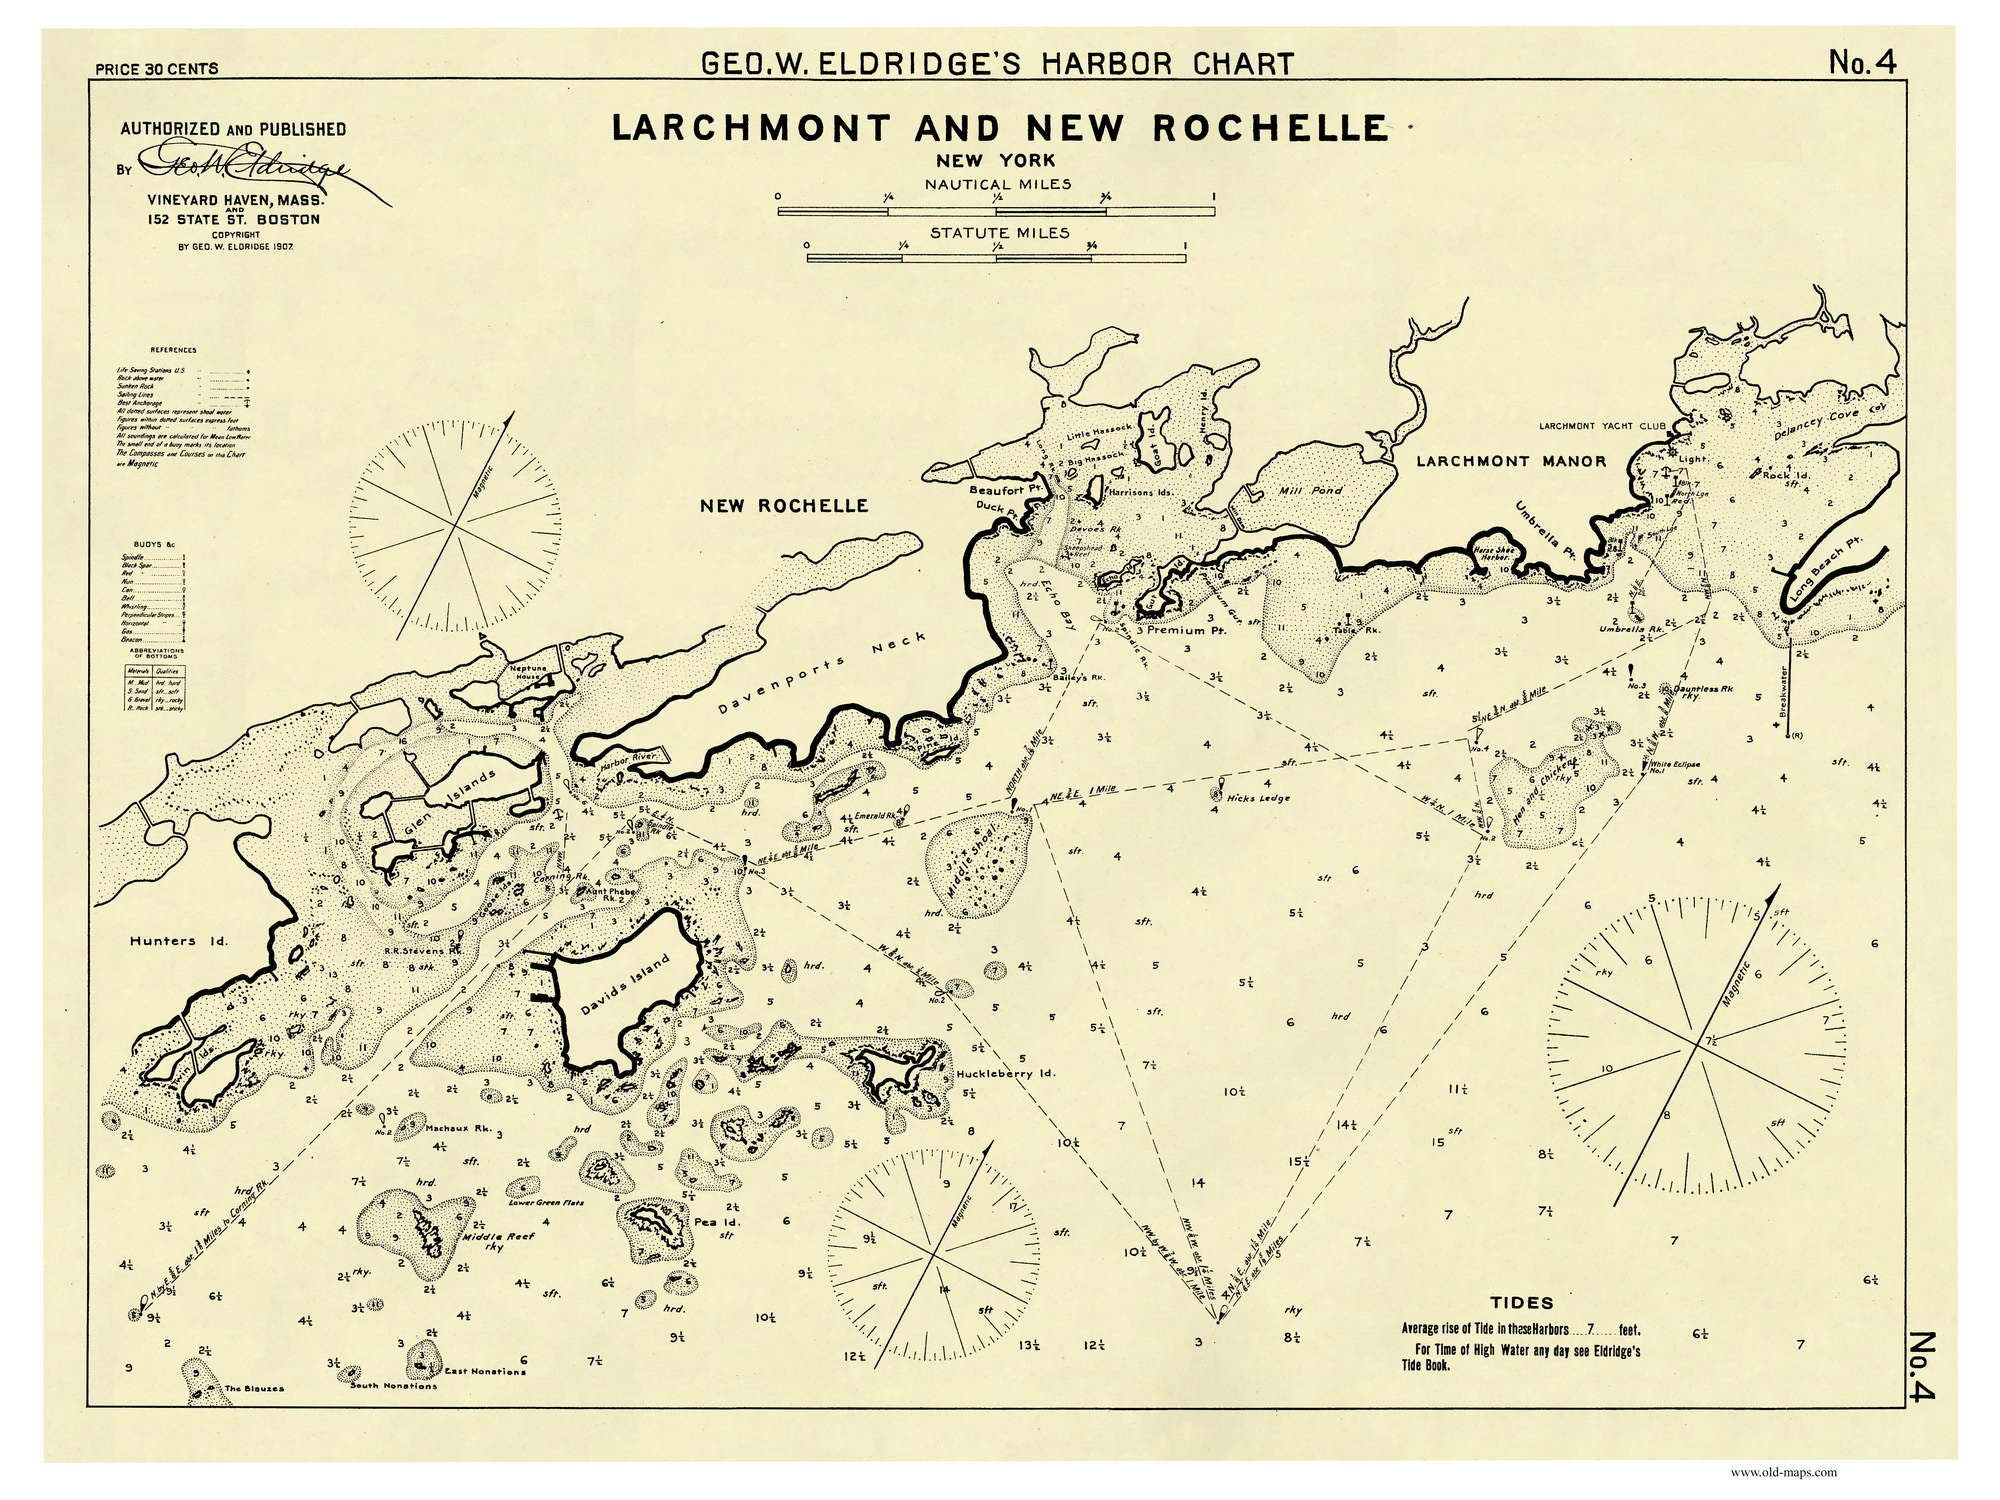 Larchmont and new rochelle 1907 harbor nautical chart new zoom nvjuhfo Choice Image